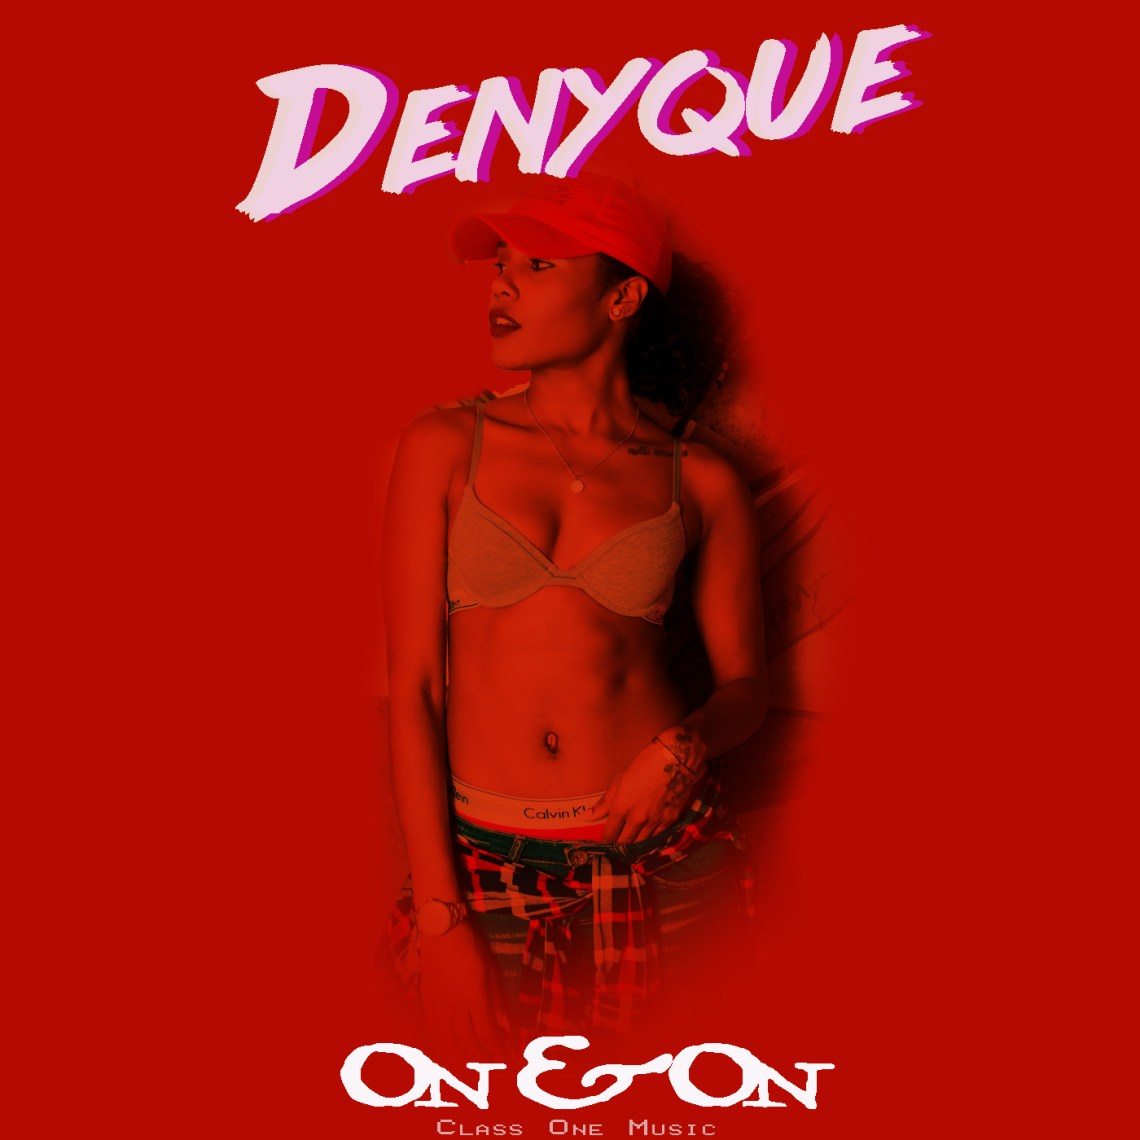 Denyque - On & On (Produced by Class One Music)